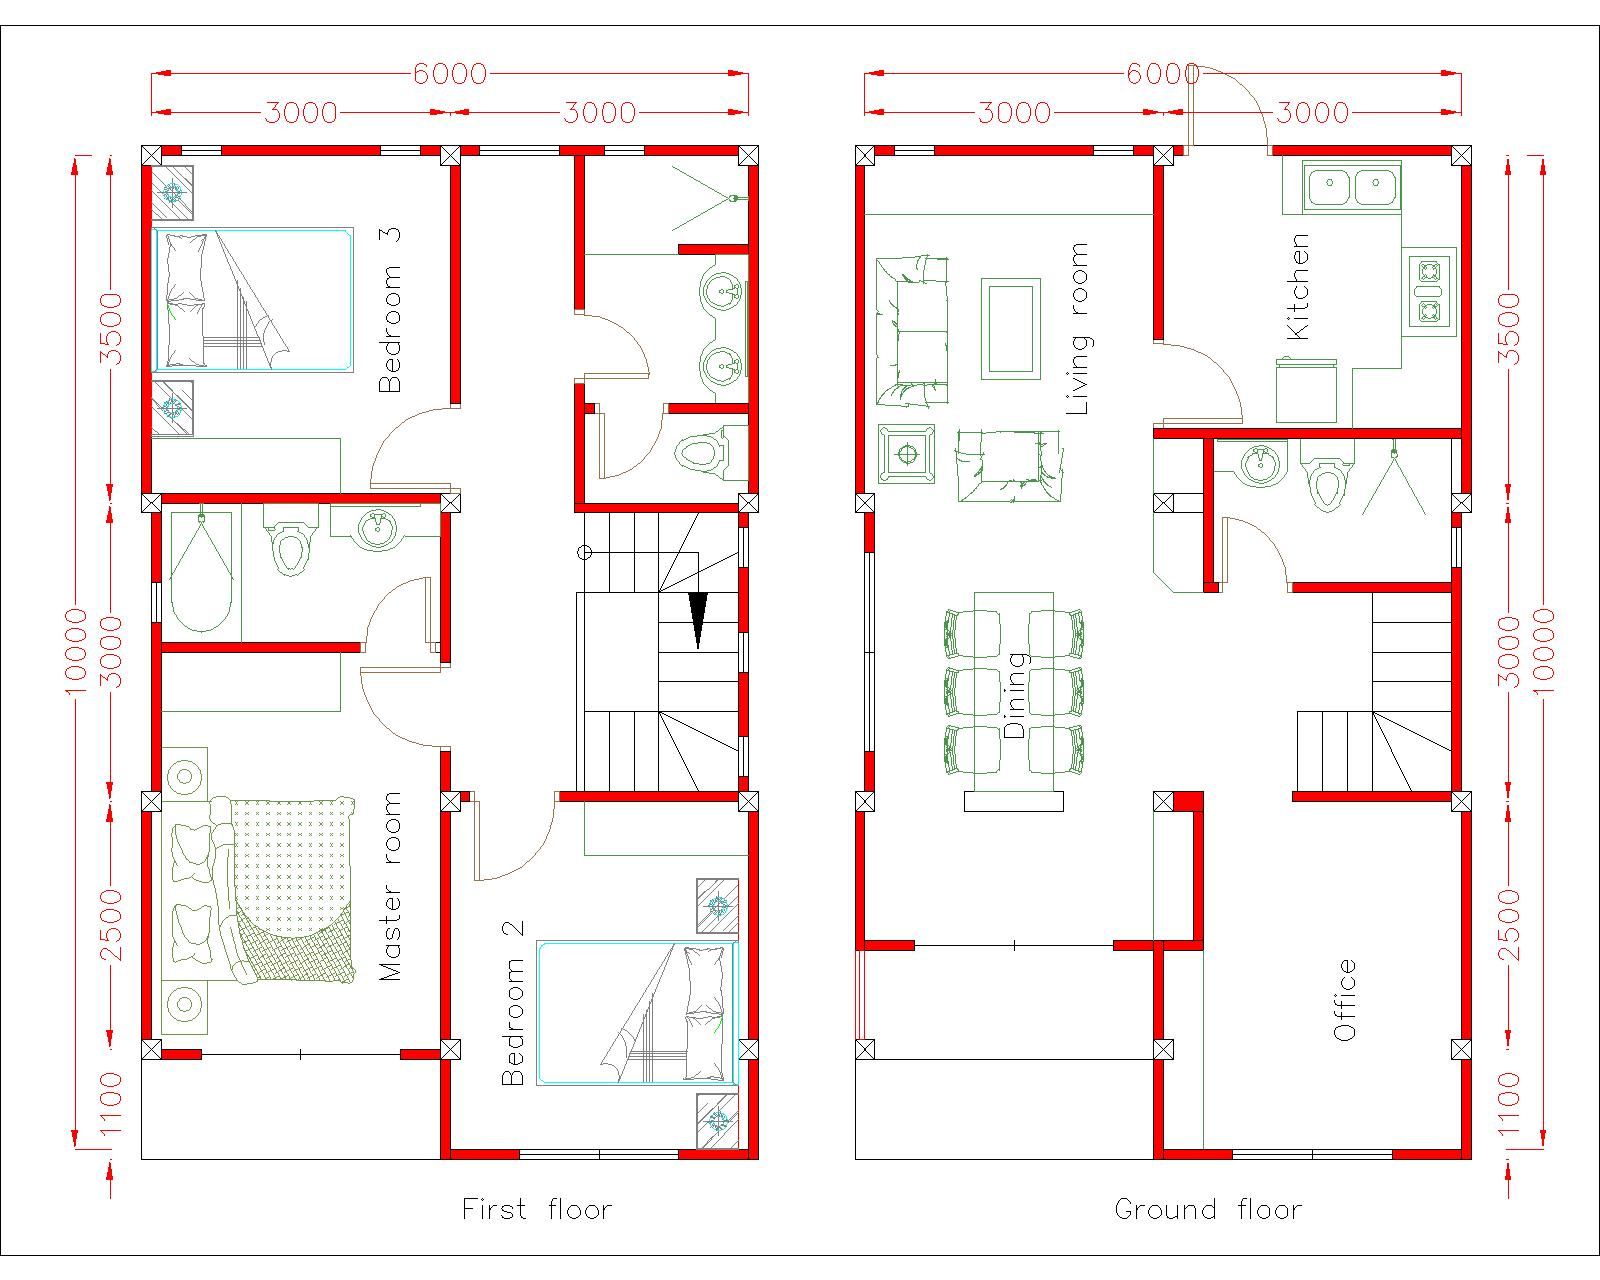 House Plans 6x10m with 3 Bedrooms - SamHousePlans